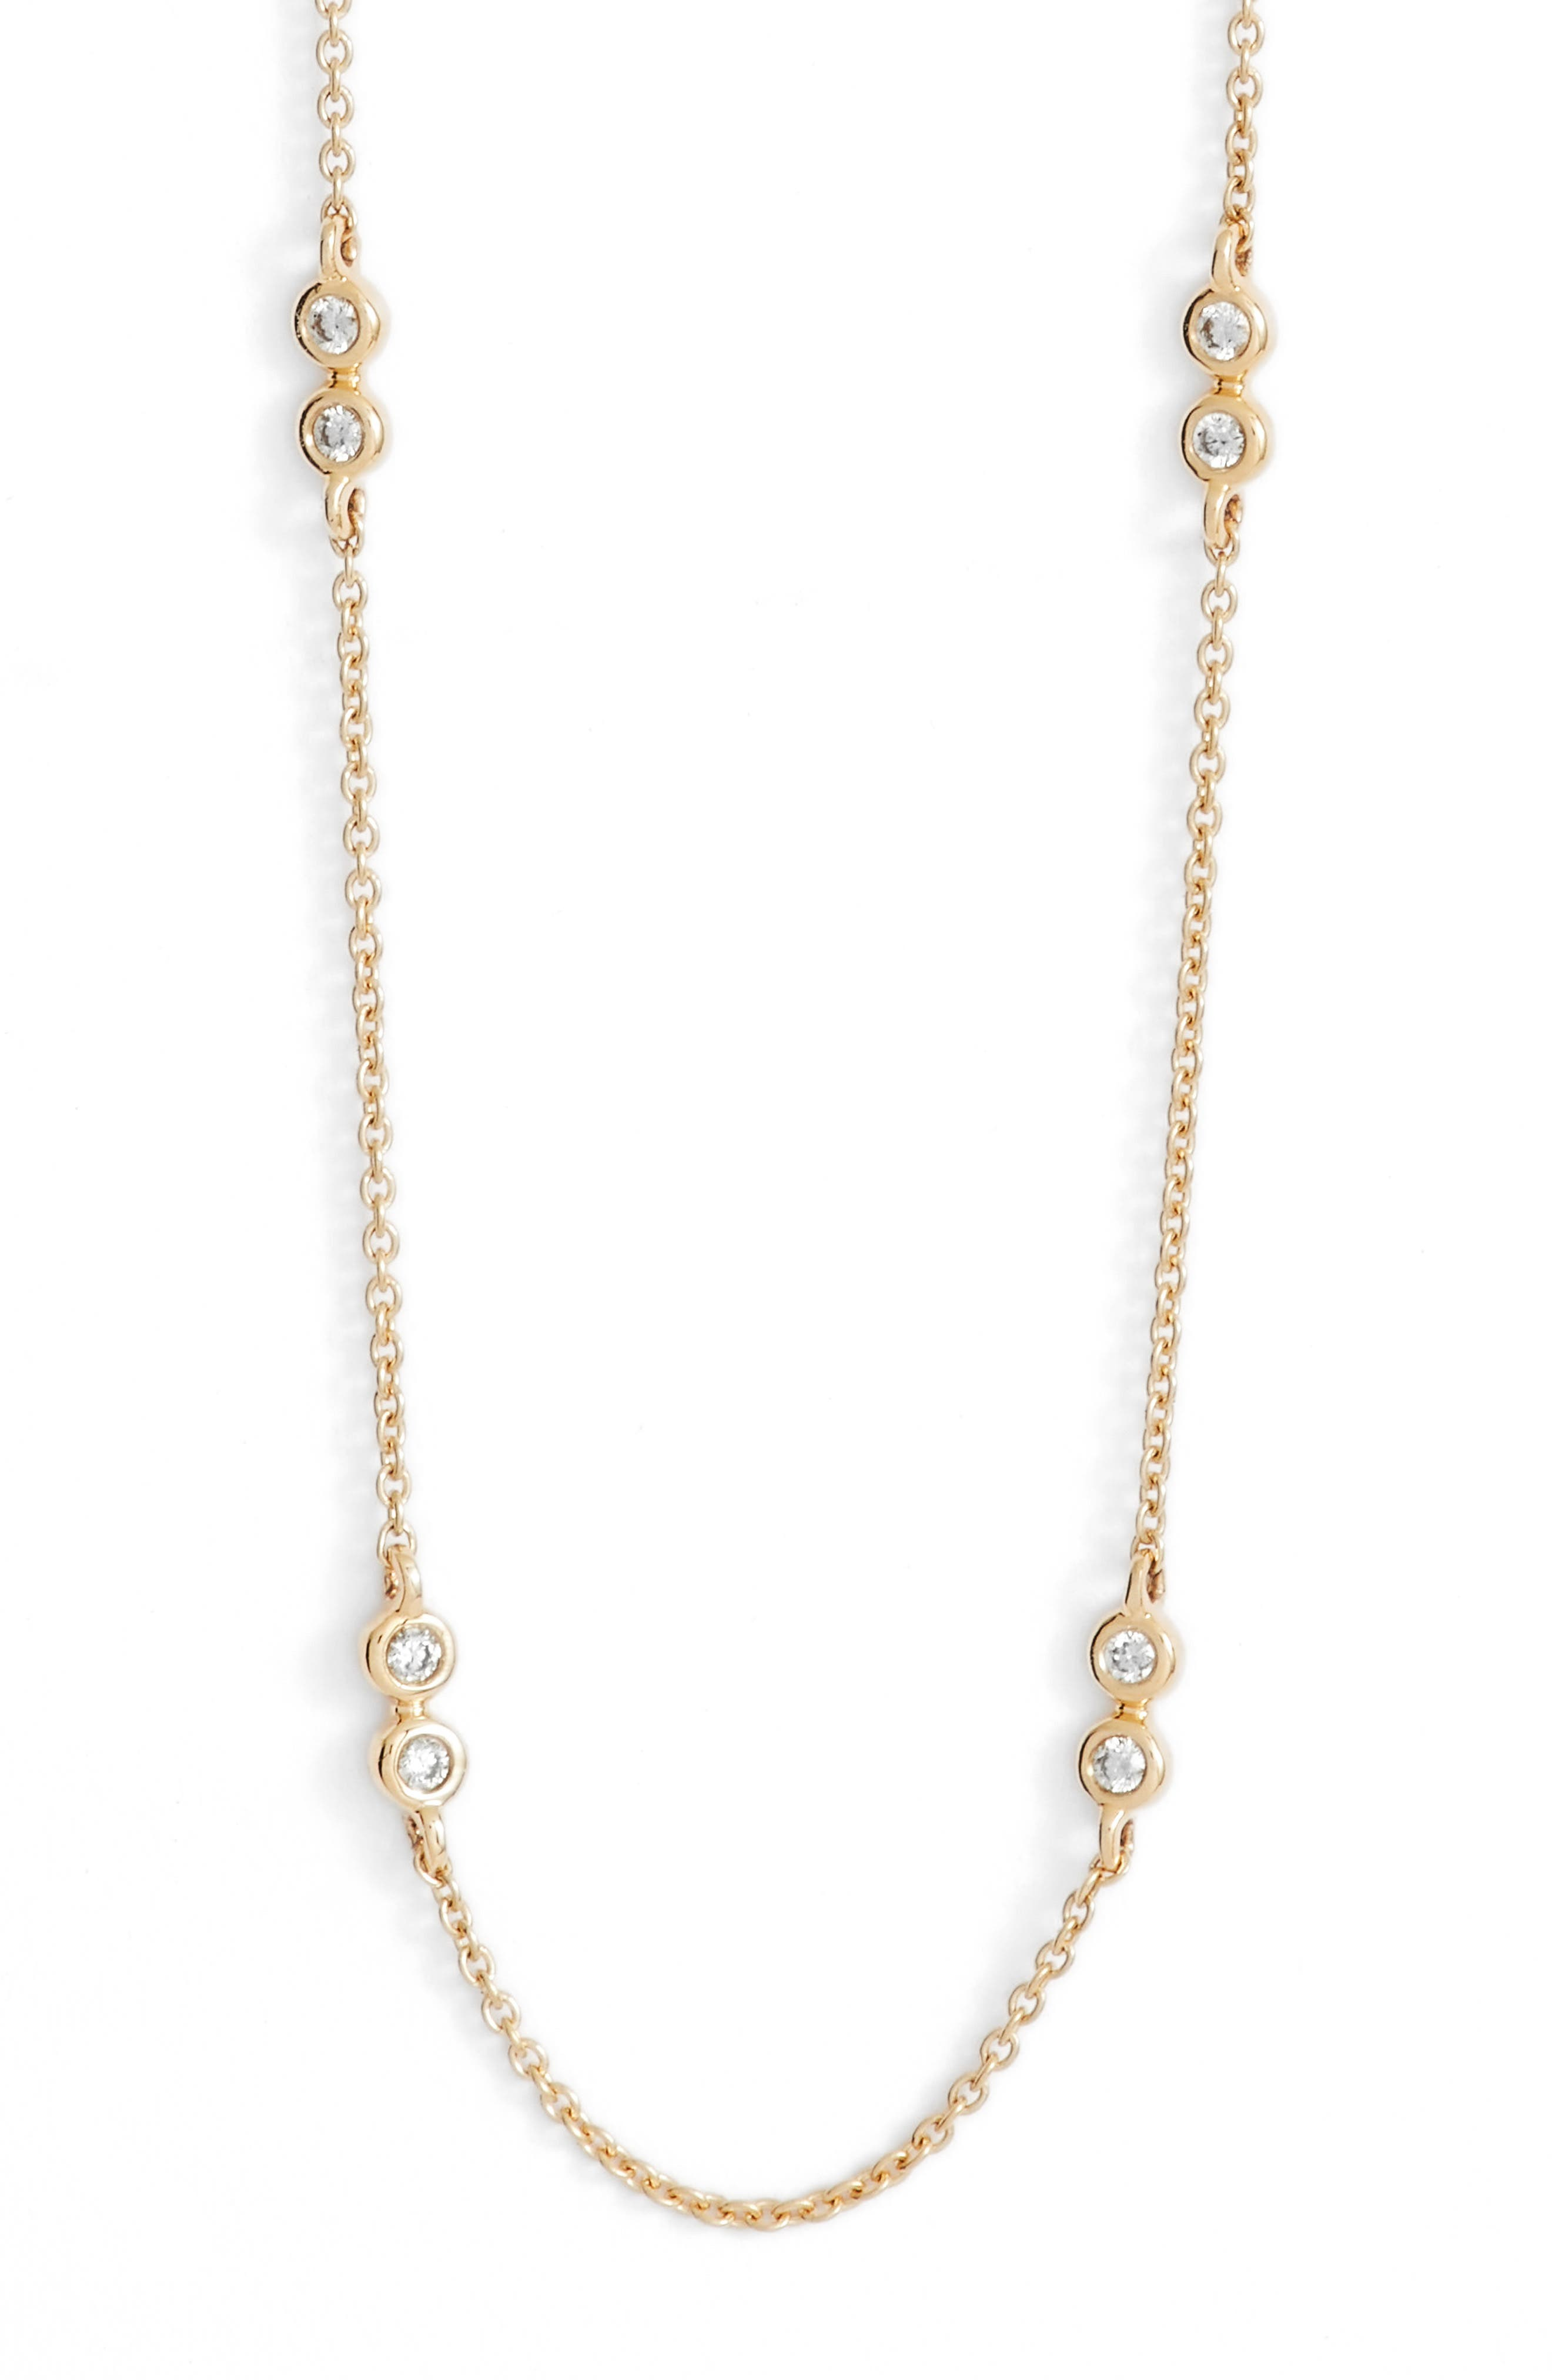 Lulu Jack Diamond Station Necklace,                         Main,                         color, YELLOW GOLD